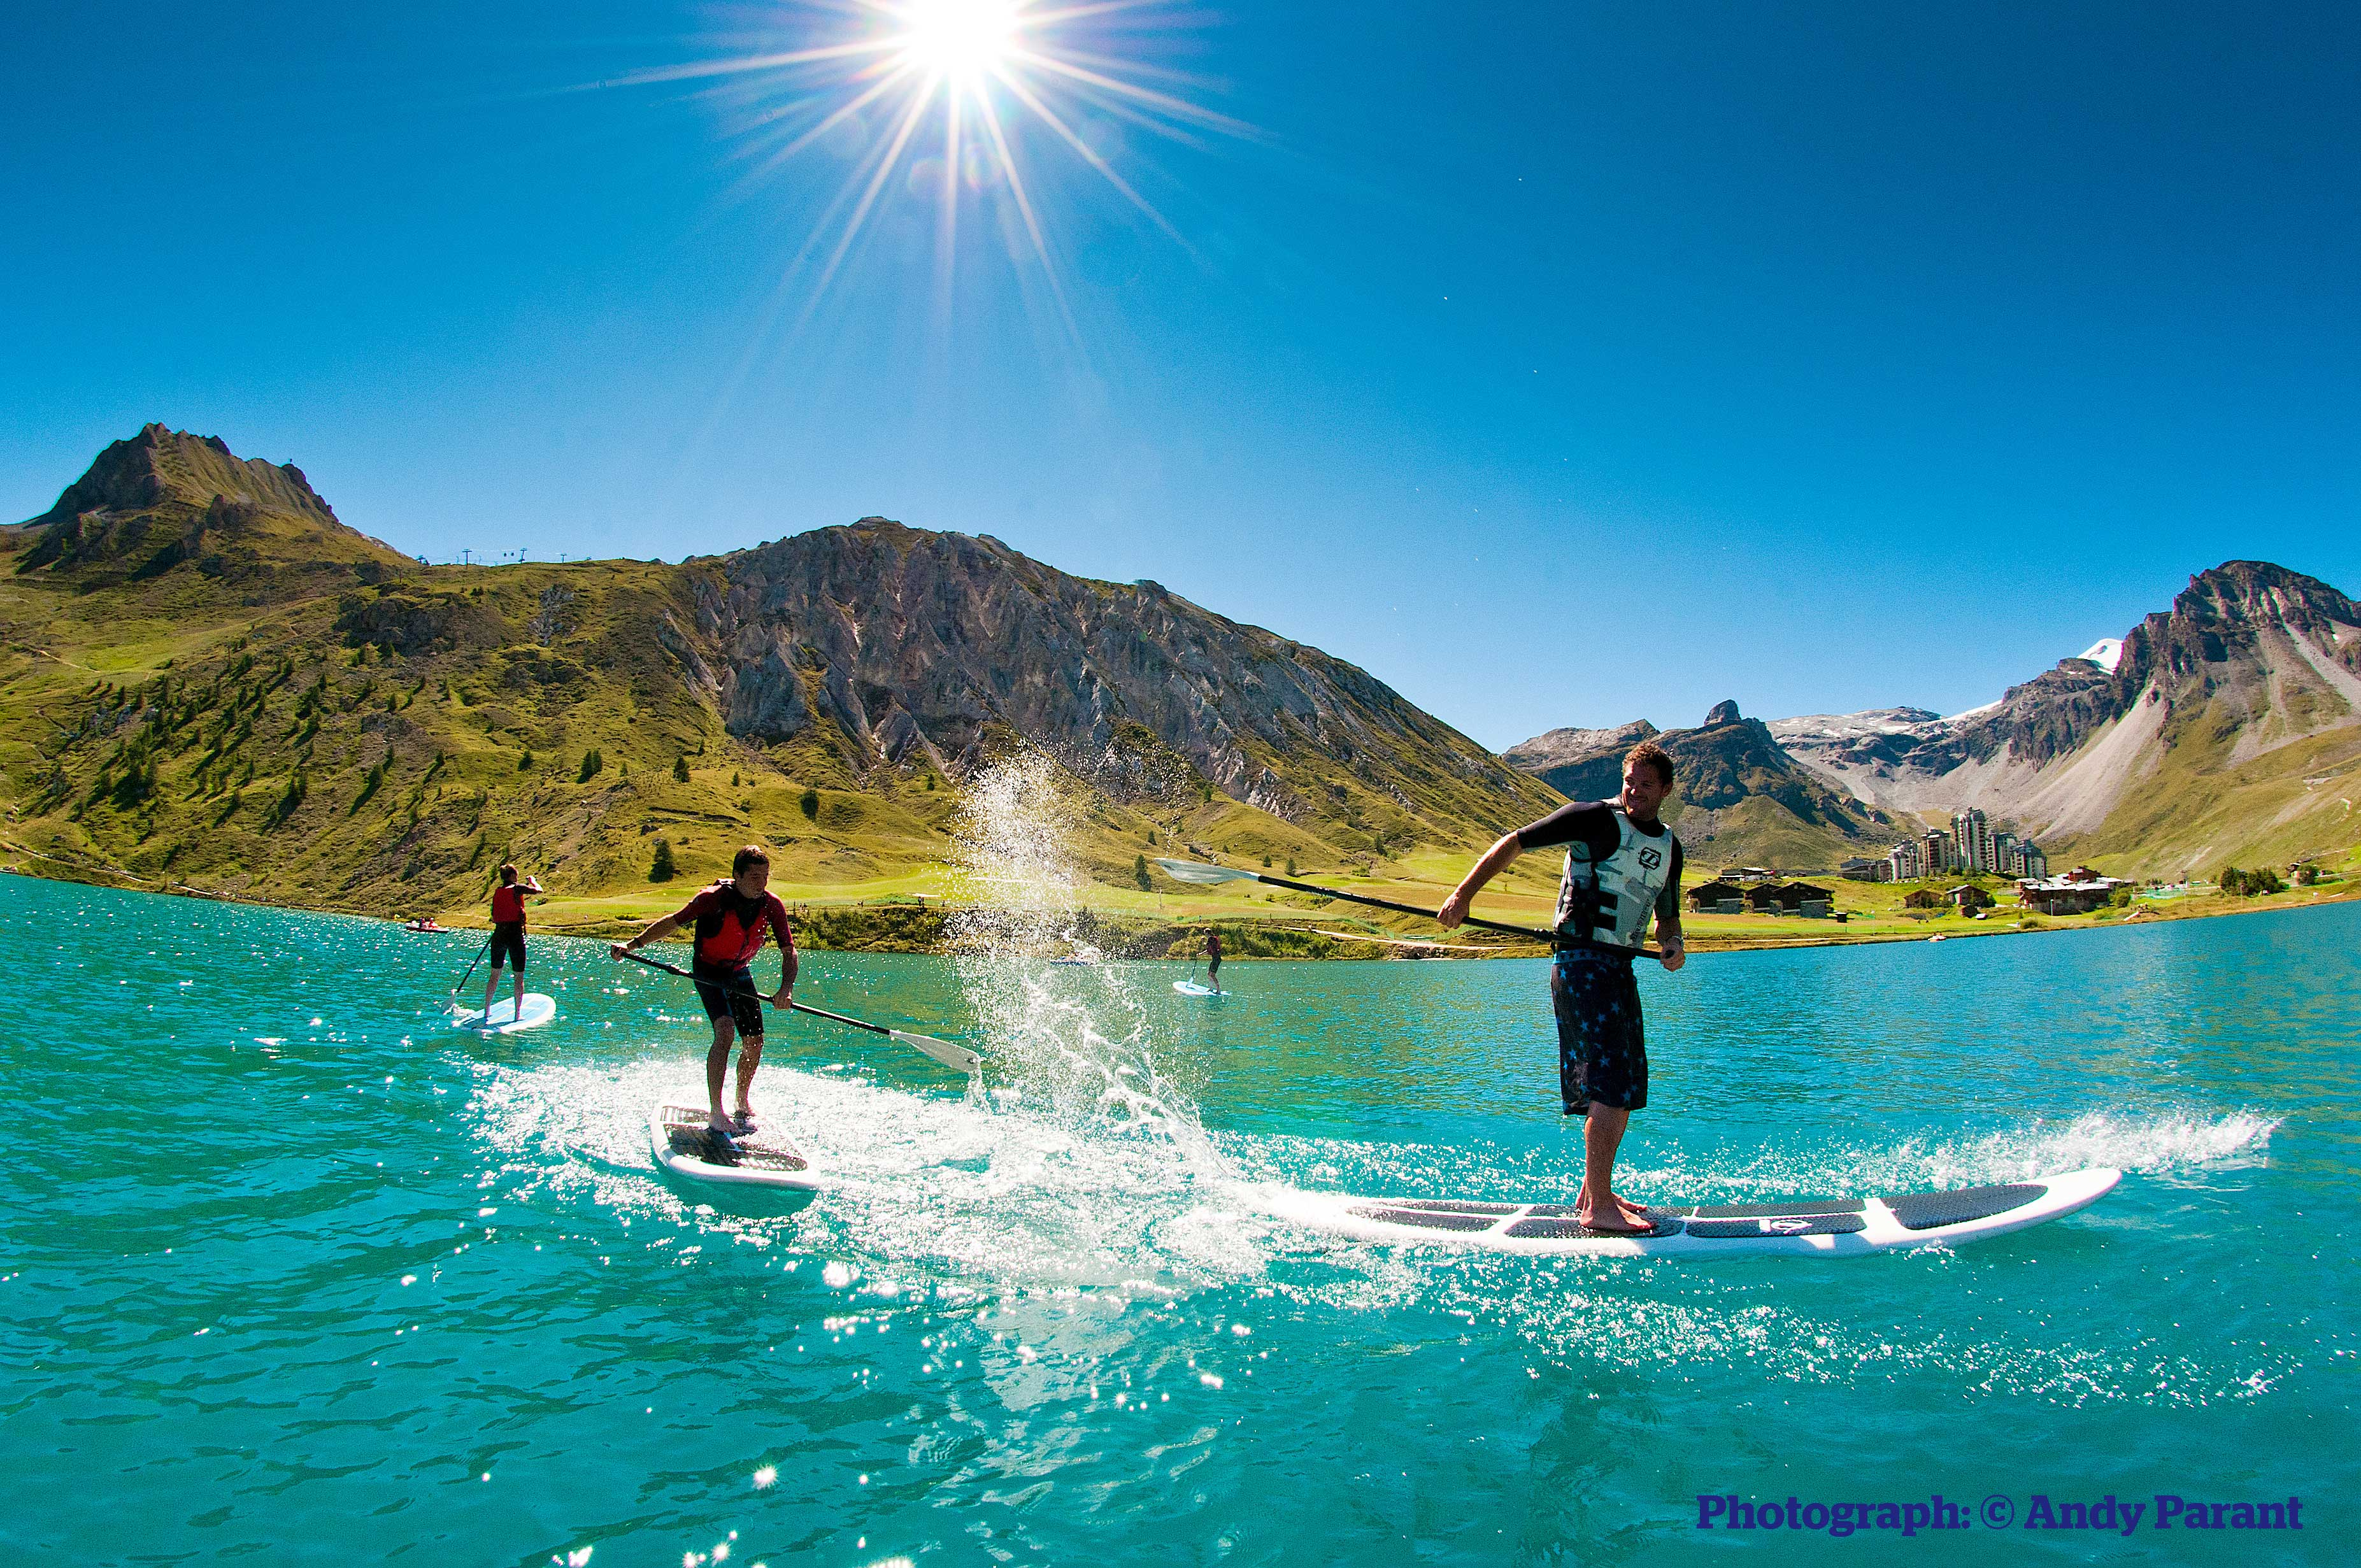 SUP boarding in Tignes, France